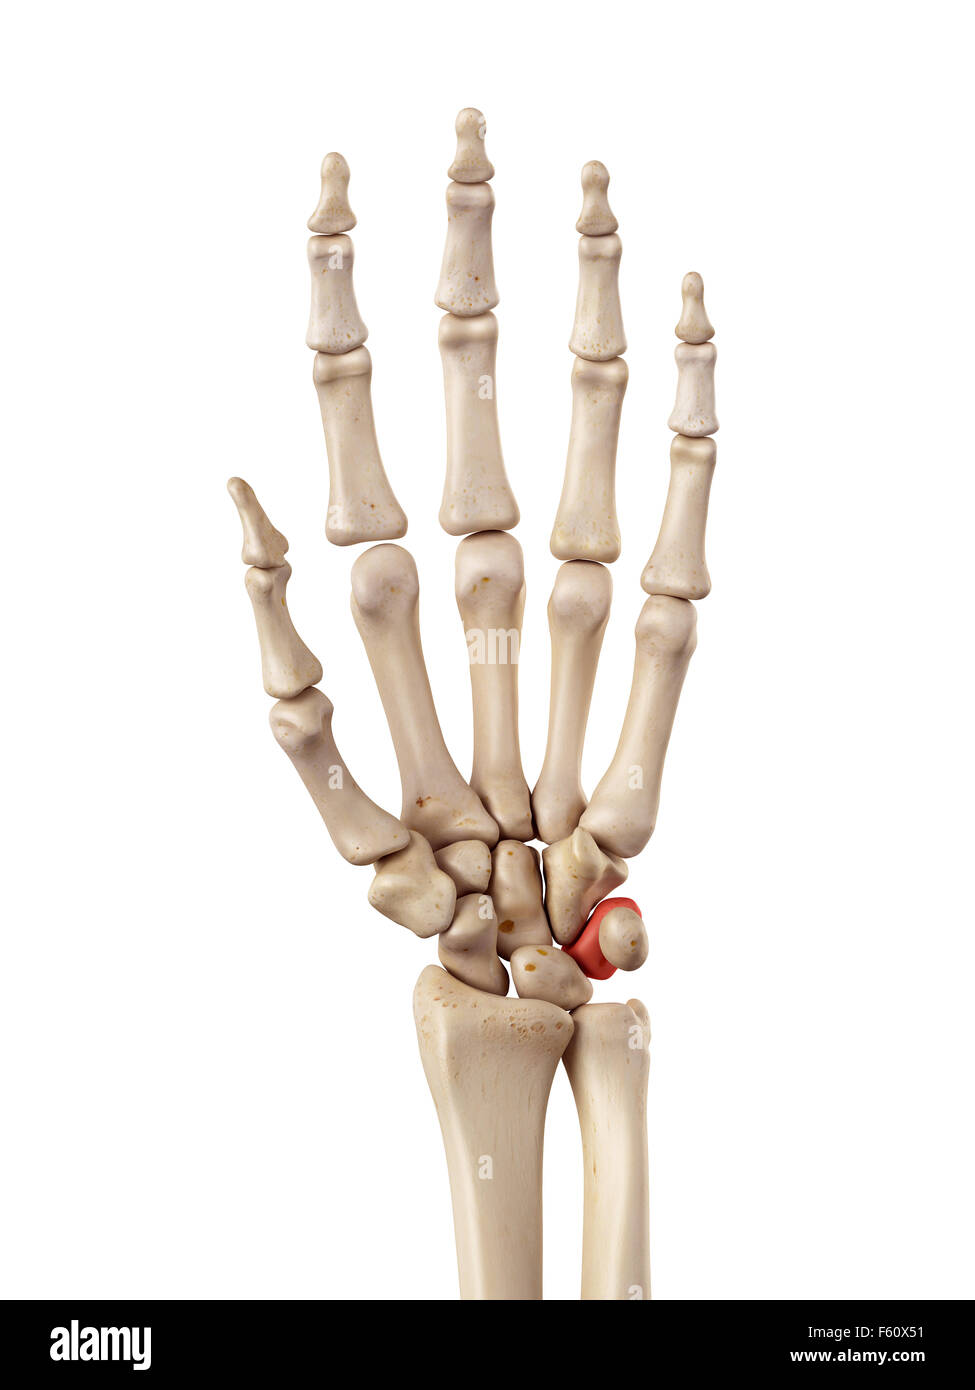 medical accurate illustration of the triquetrum bone - Stock Image